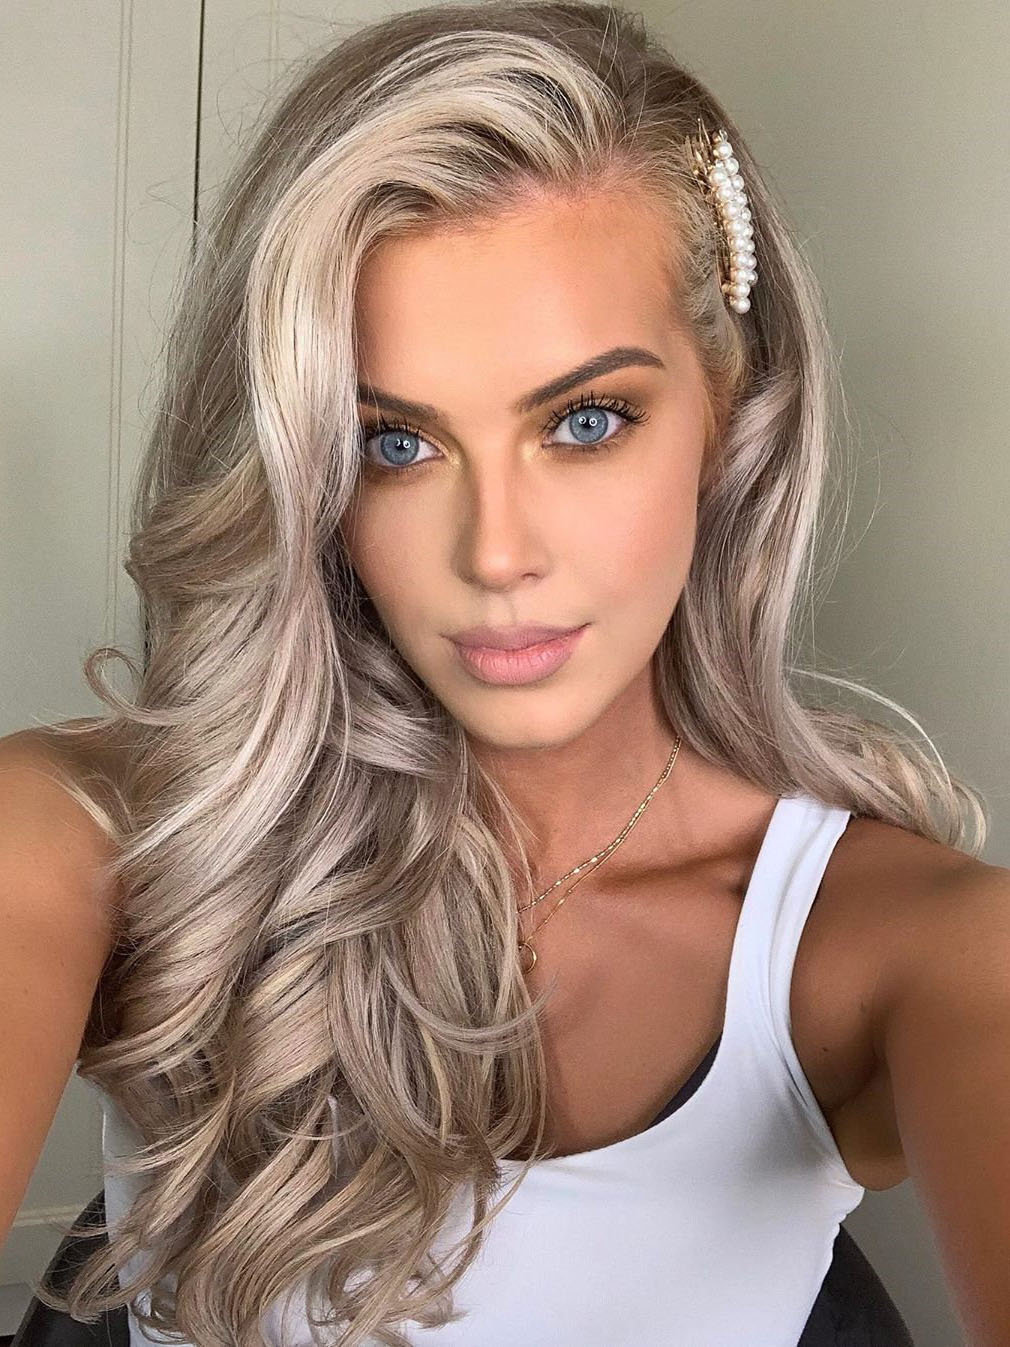 60 Elegant Prom Hairstyles: Short, Medium & Long prom hairstyle. They are going to brighten your party and make them even more remarkable. Click to see more hairstyles.